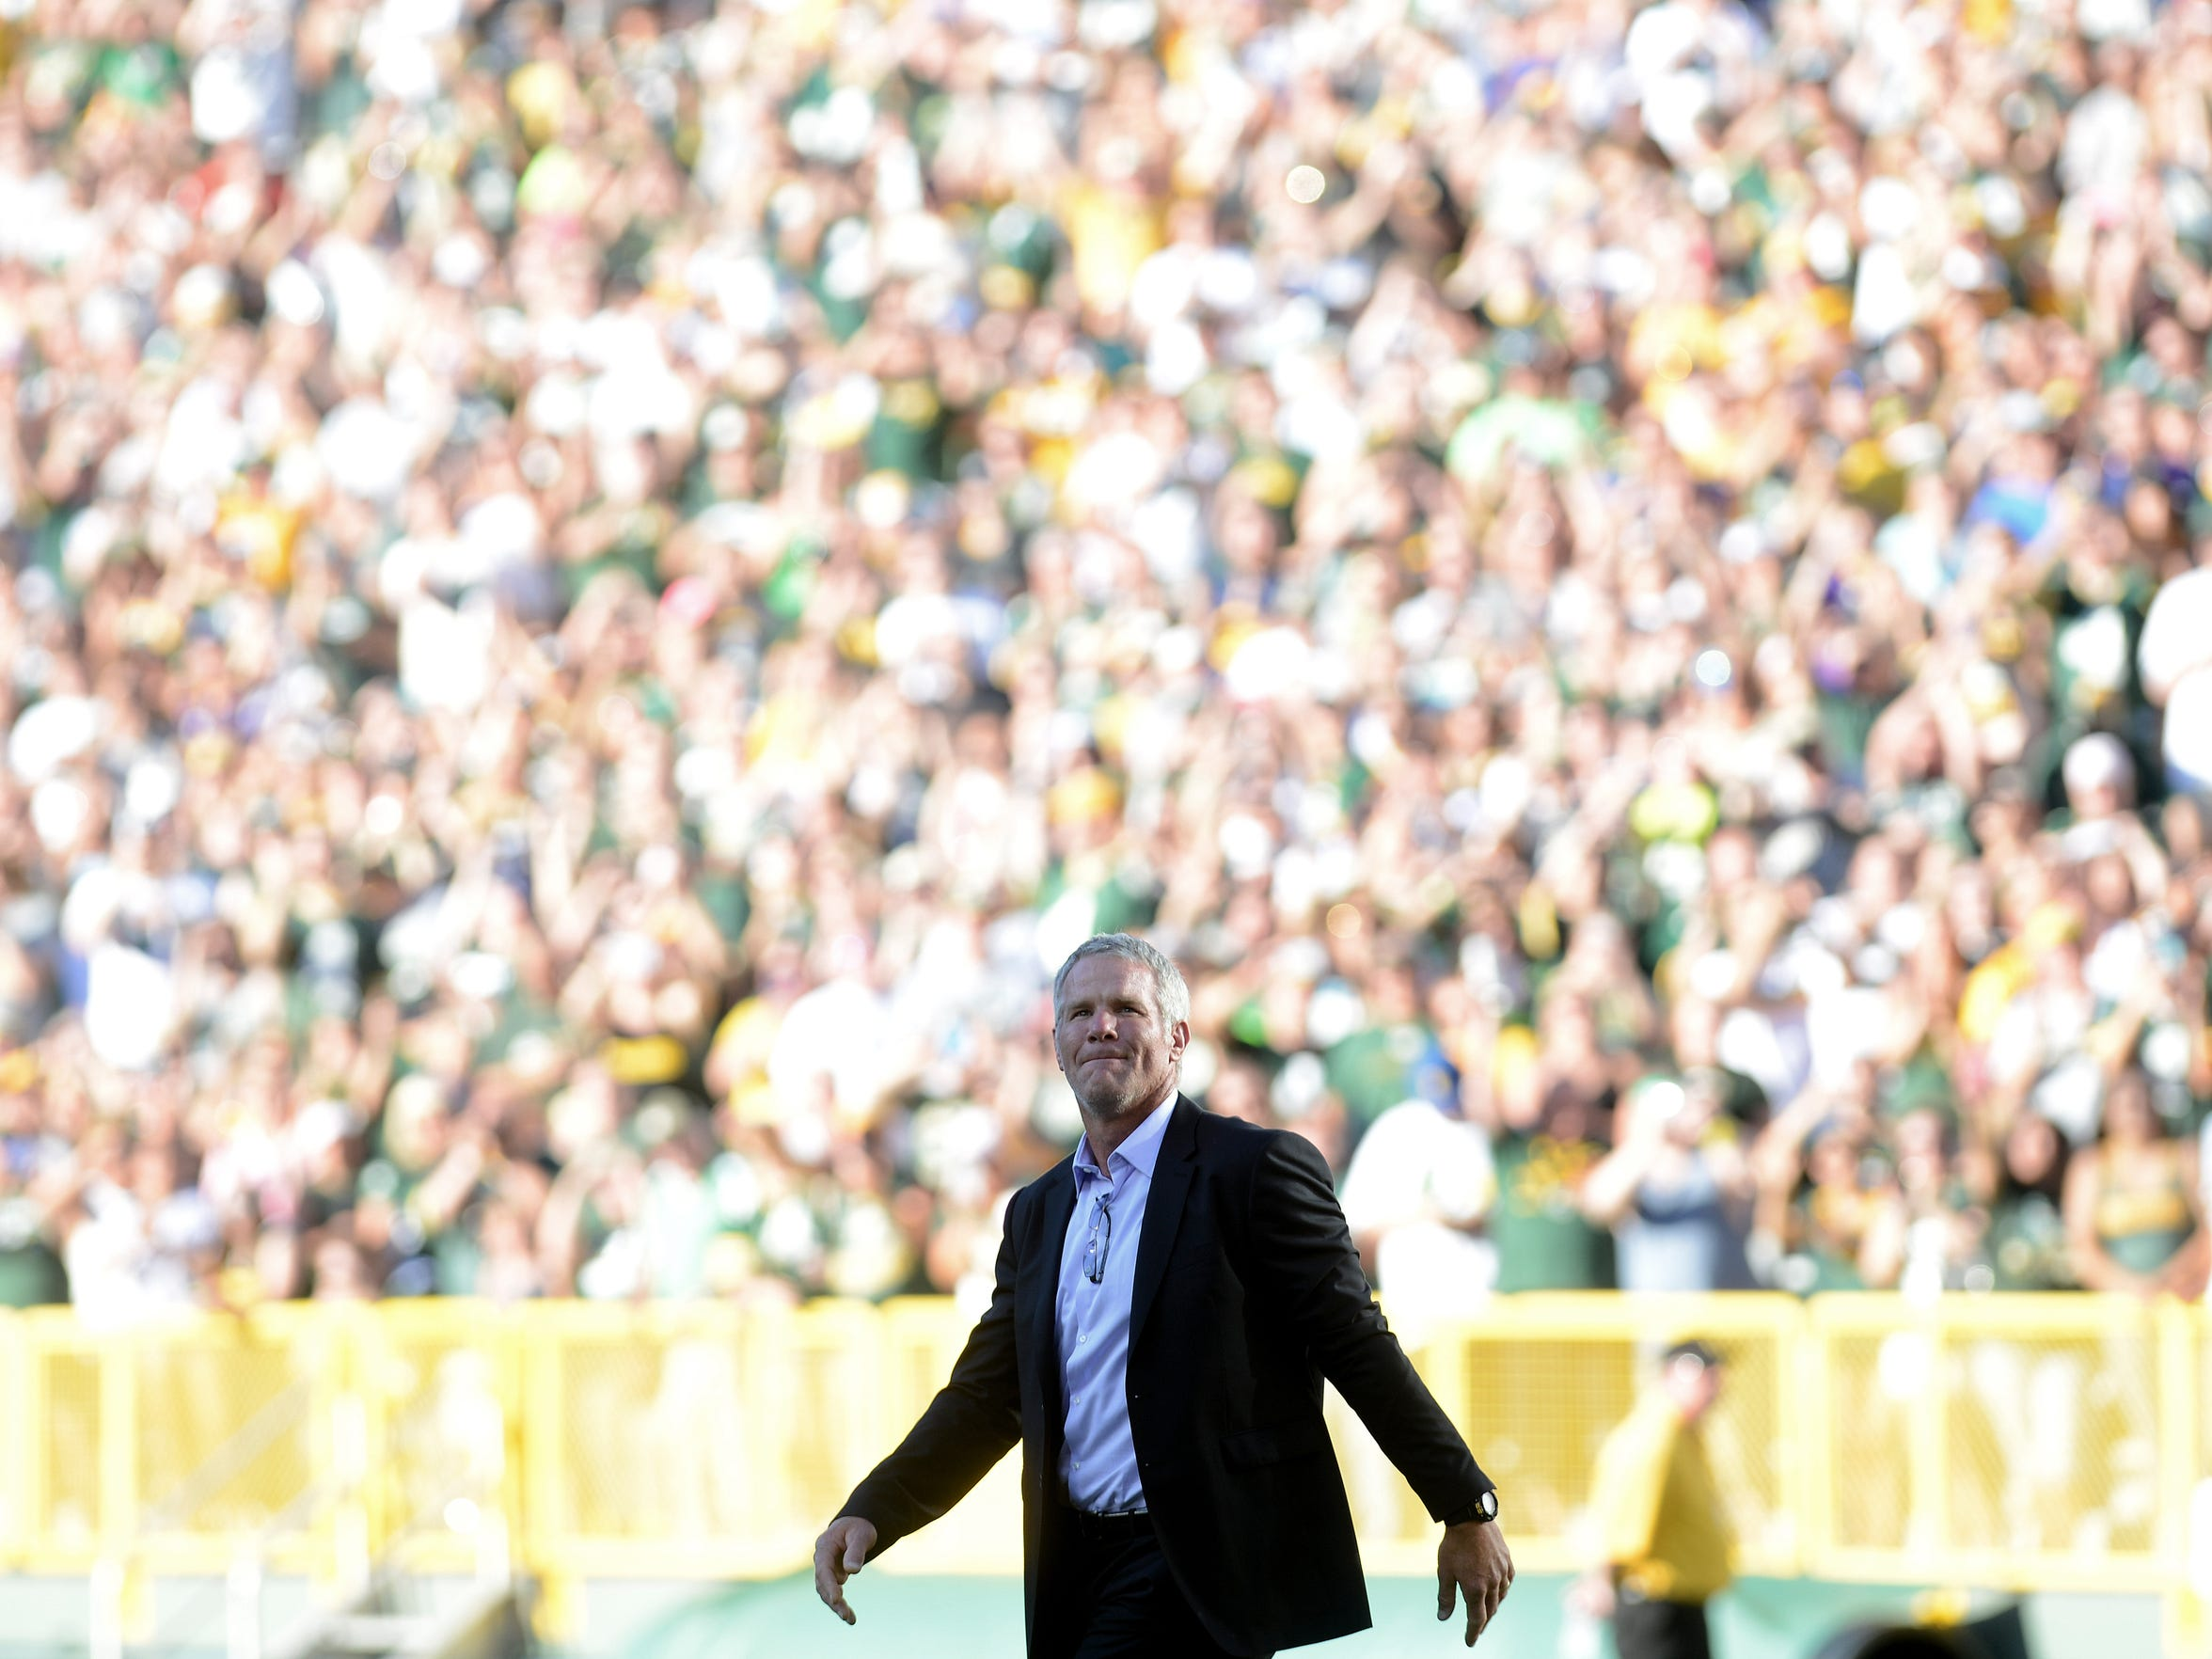 Brett Favre looks out at a sold-out crowd in the bowl of Lambeau Field during his induction into the Packer Hall of Fame.